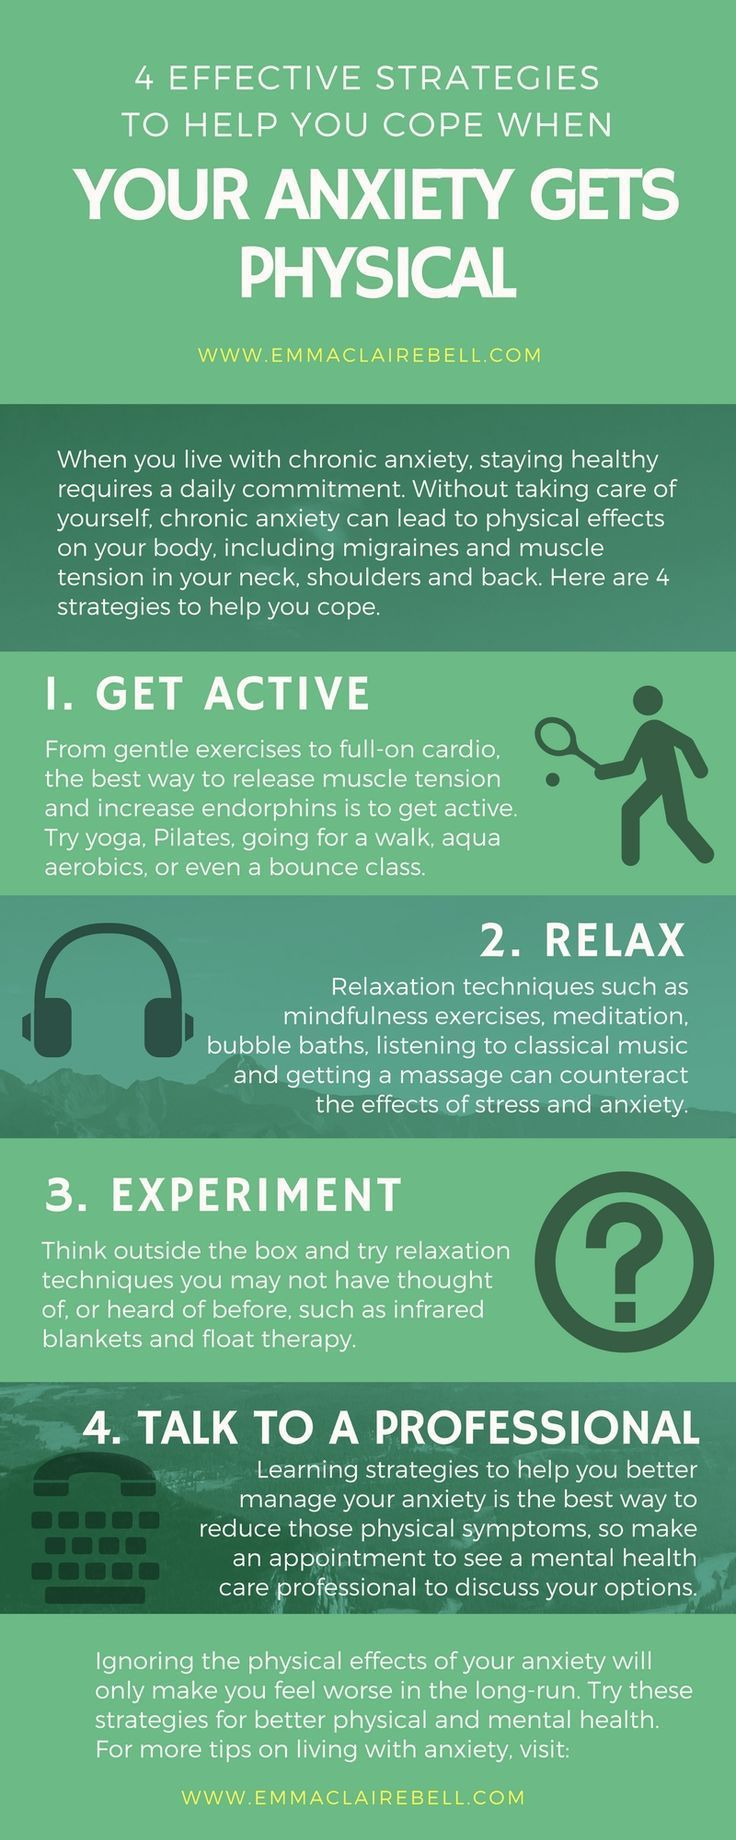 Between muscle tension, migraine and teeth grinding, anxiety can wreak havoc with our bodies. These are some of the strategies that have helped me manage the physical effects of my #anxiety.